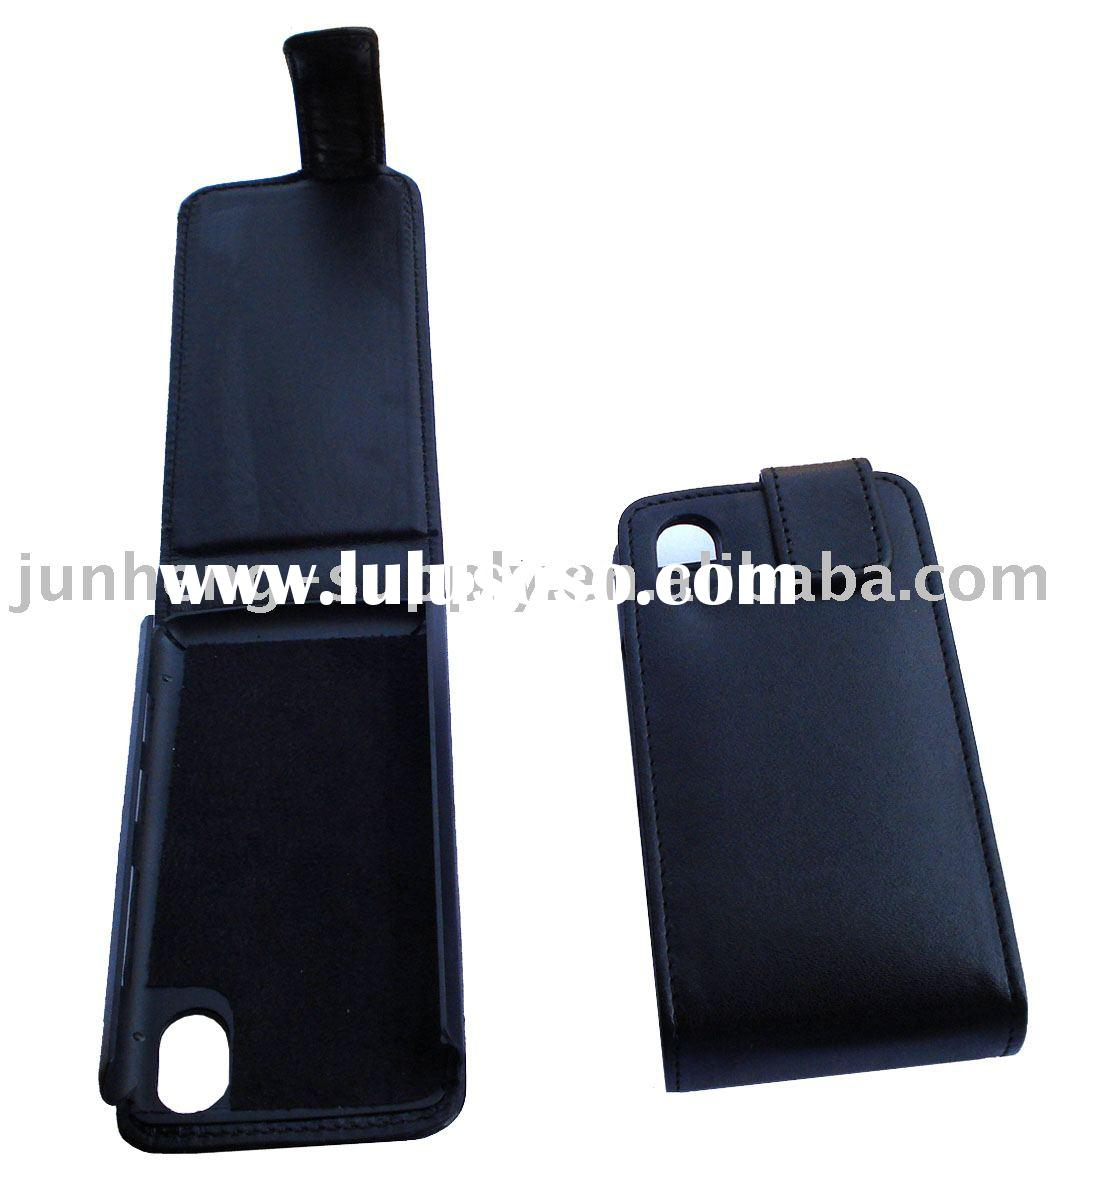 Leather Case, mobile phone leather case, cellphone pouch for LG kp500